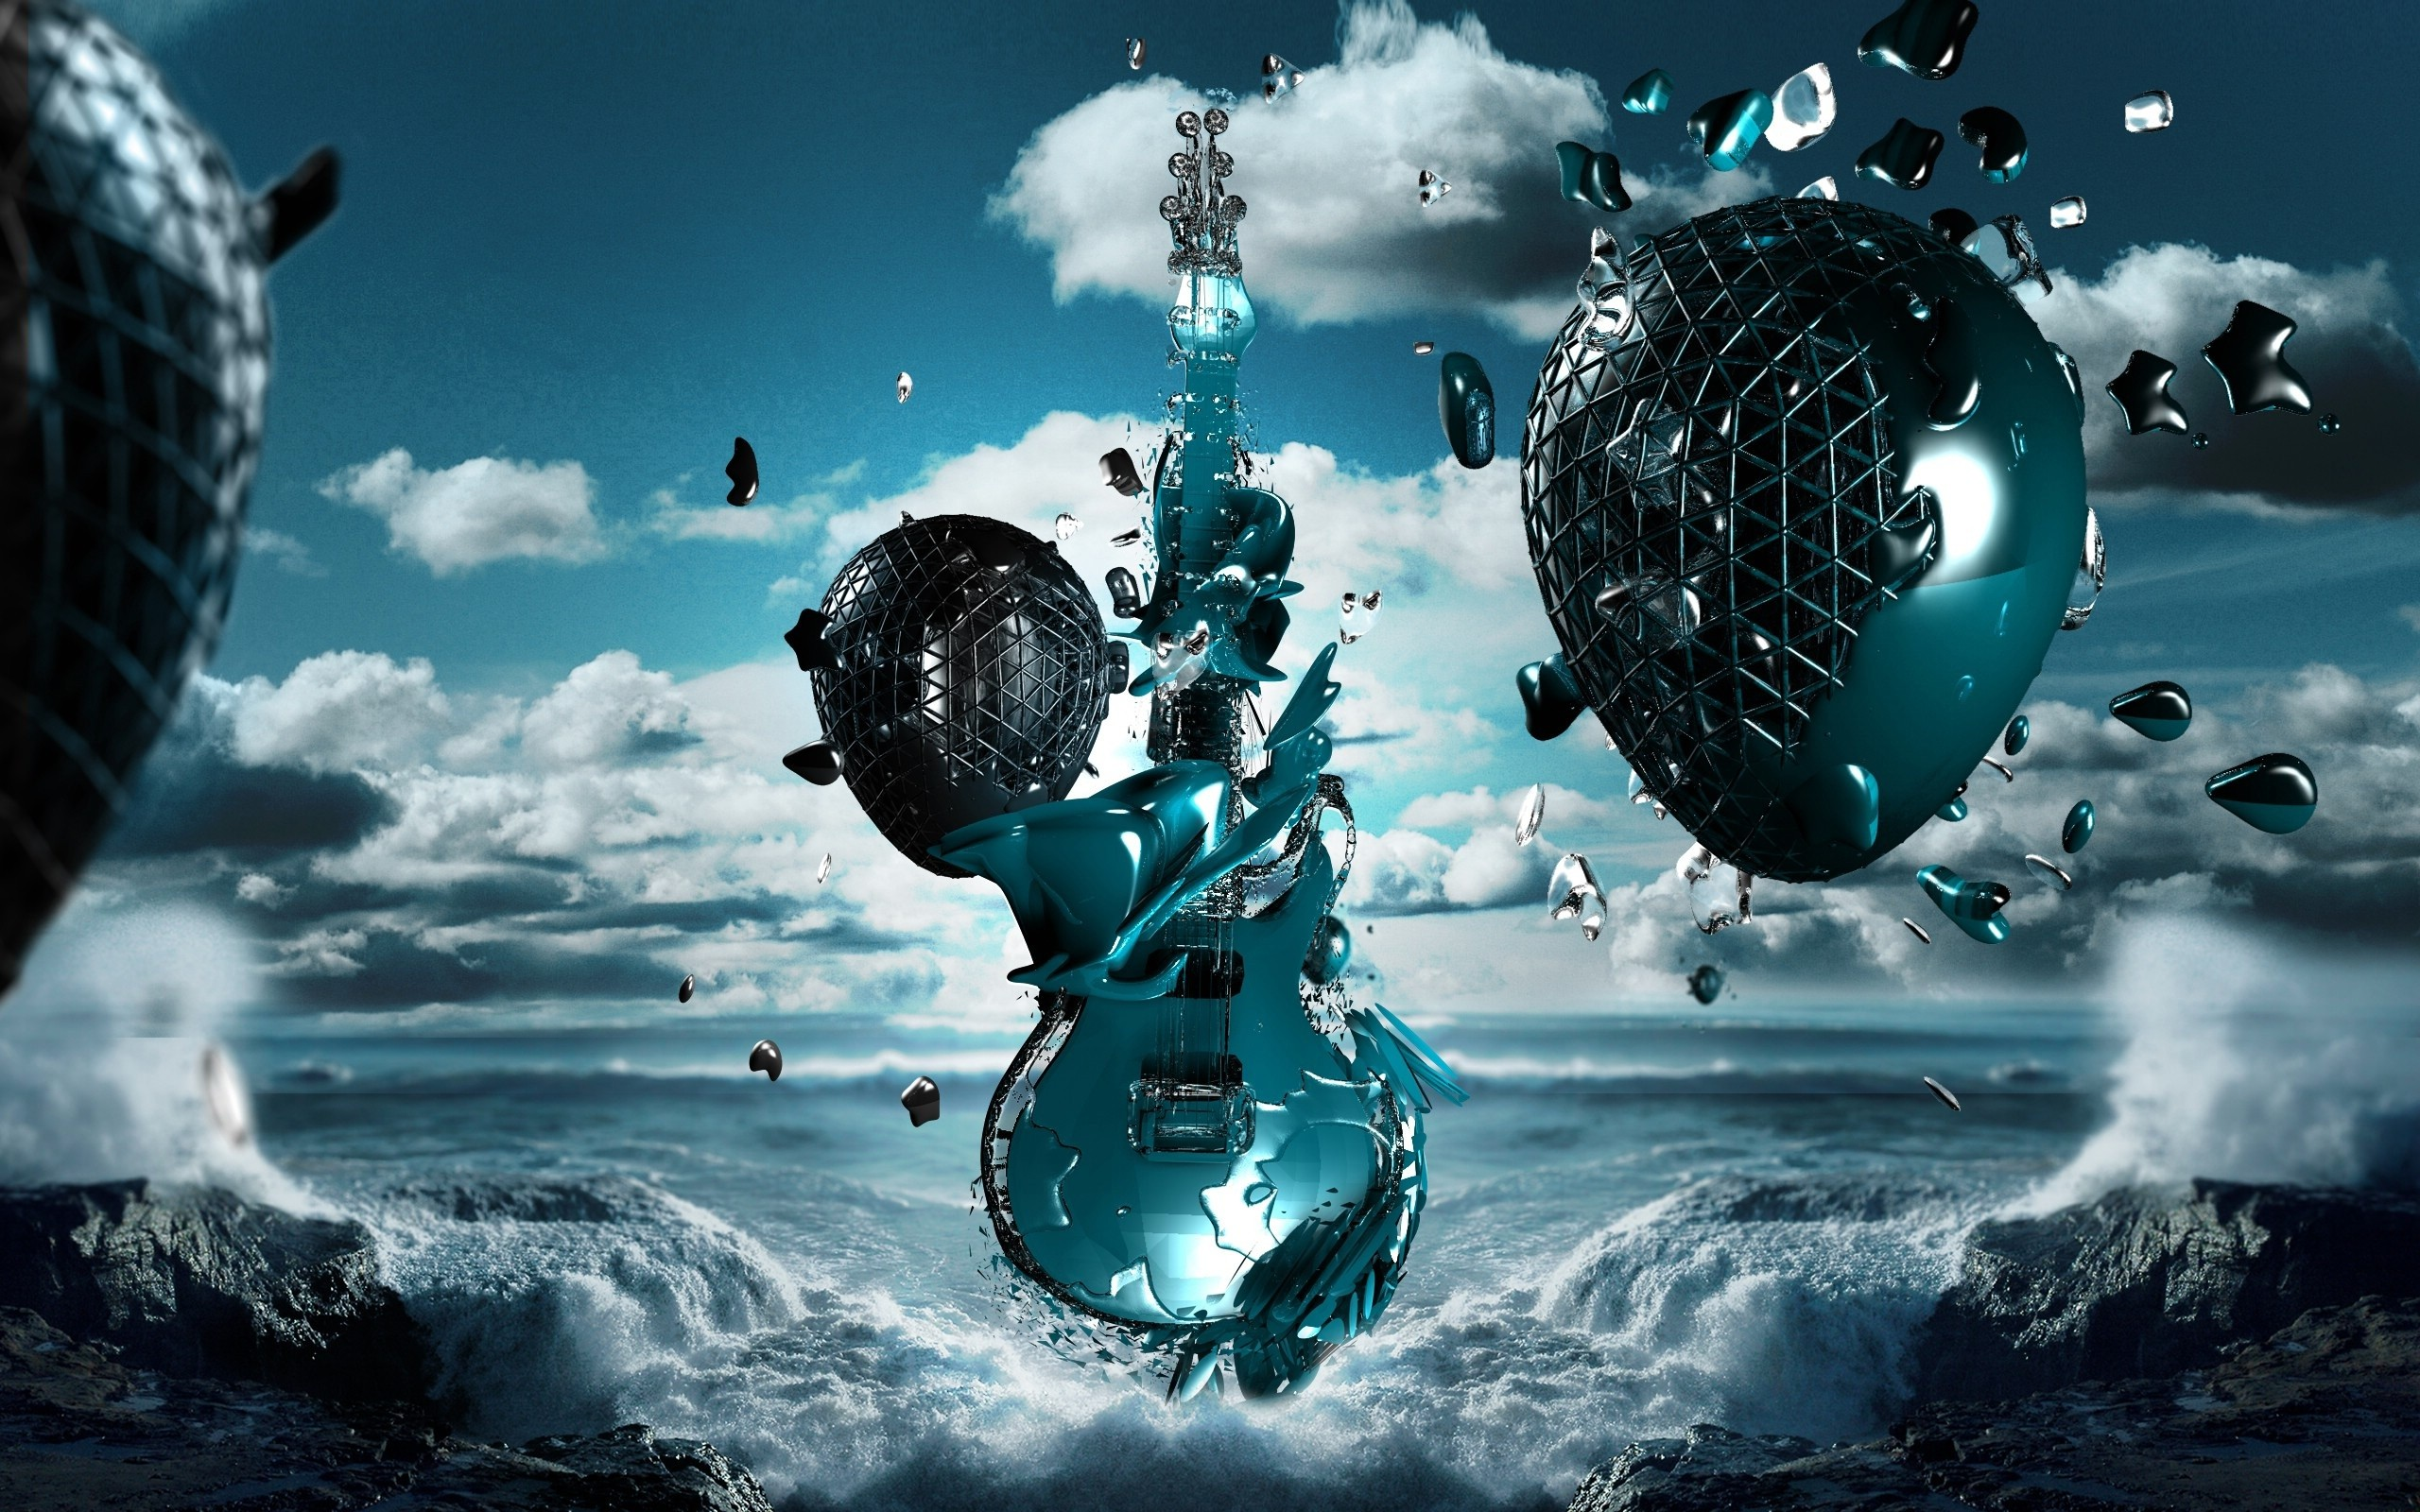 Cool Music HD Wallpapers